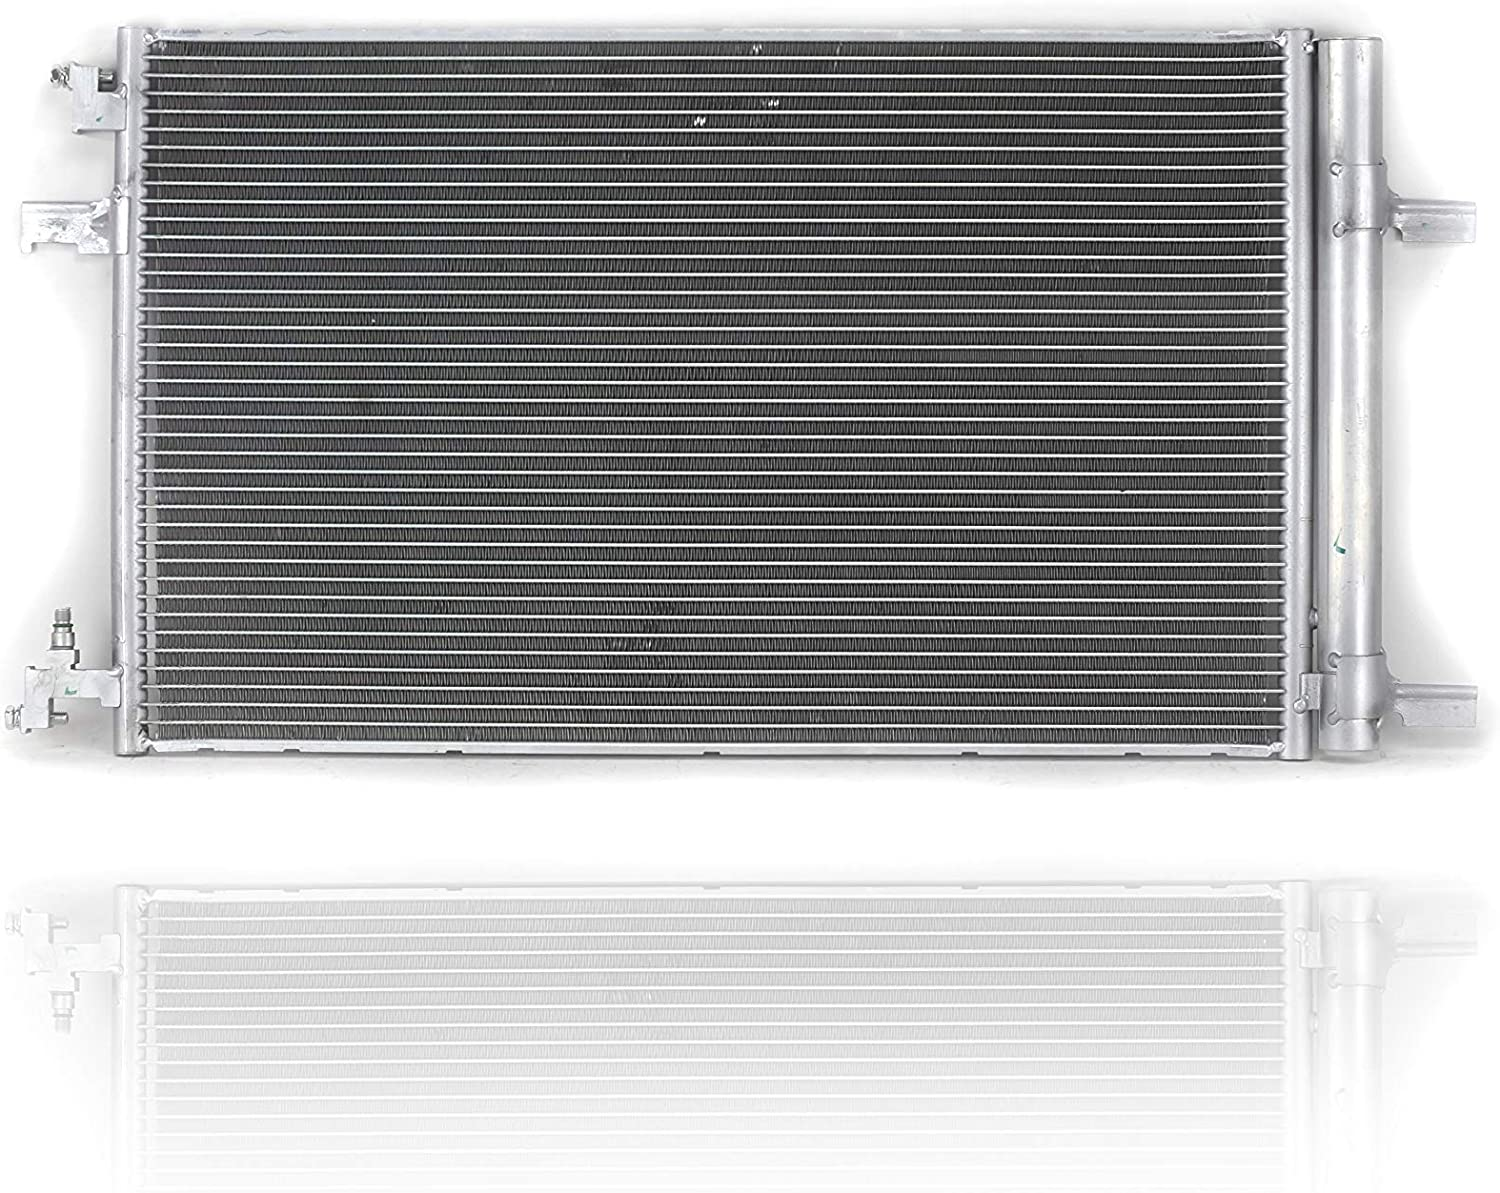 A-C Condenser PACIFIC BEST INC For//Fit 10-16 Buick LaCrosse 11-15 Chevrolet Cruze 16-16 Cruze Limited 23305638 With Receiver /& Dryer